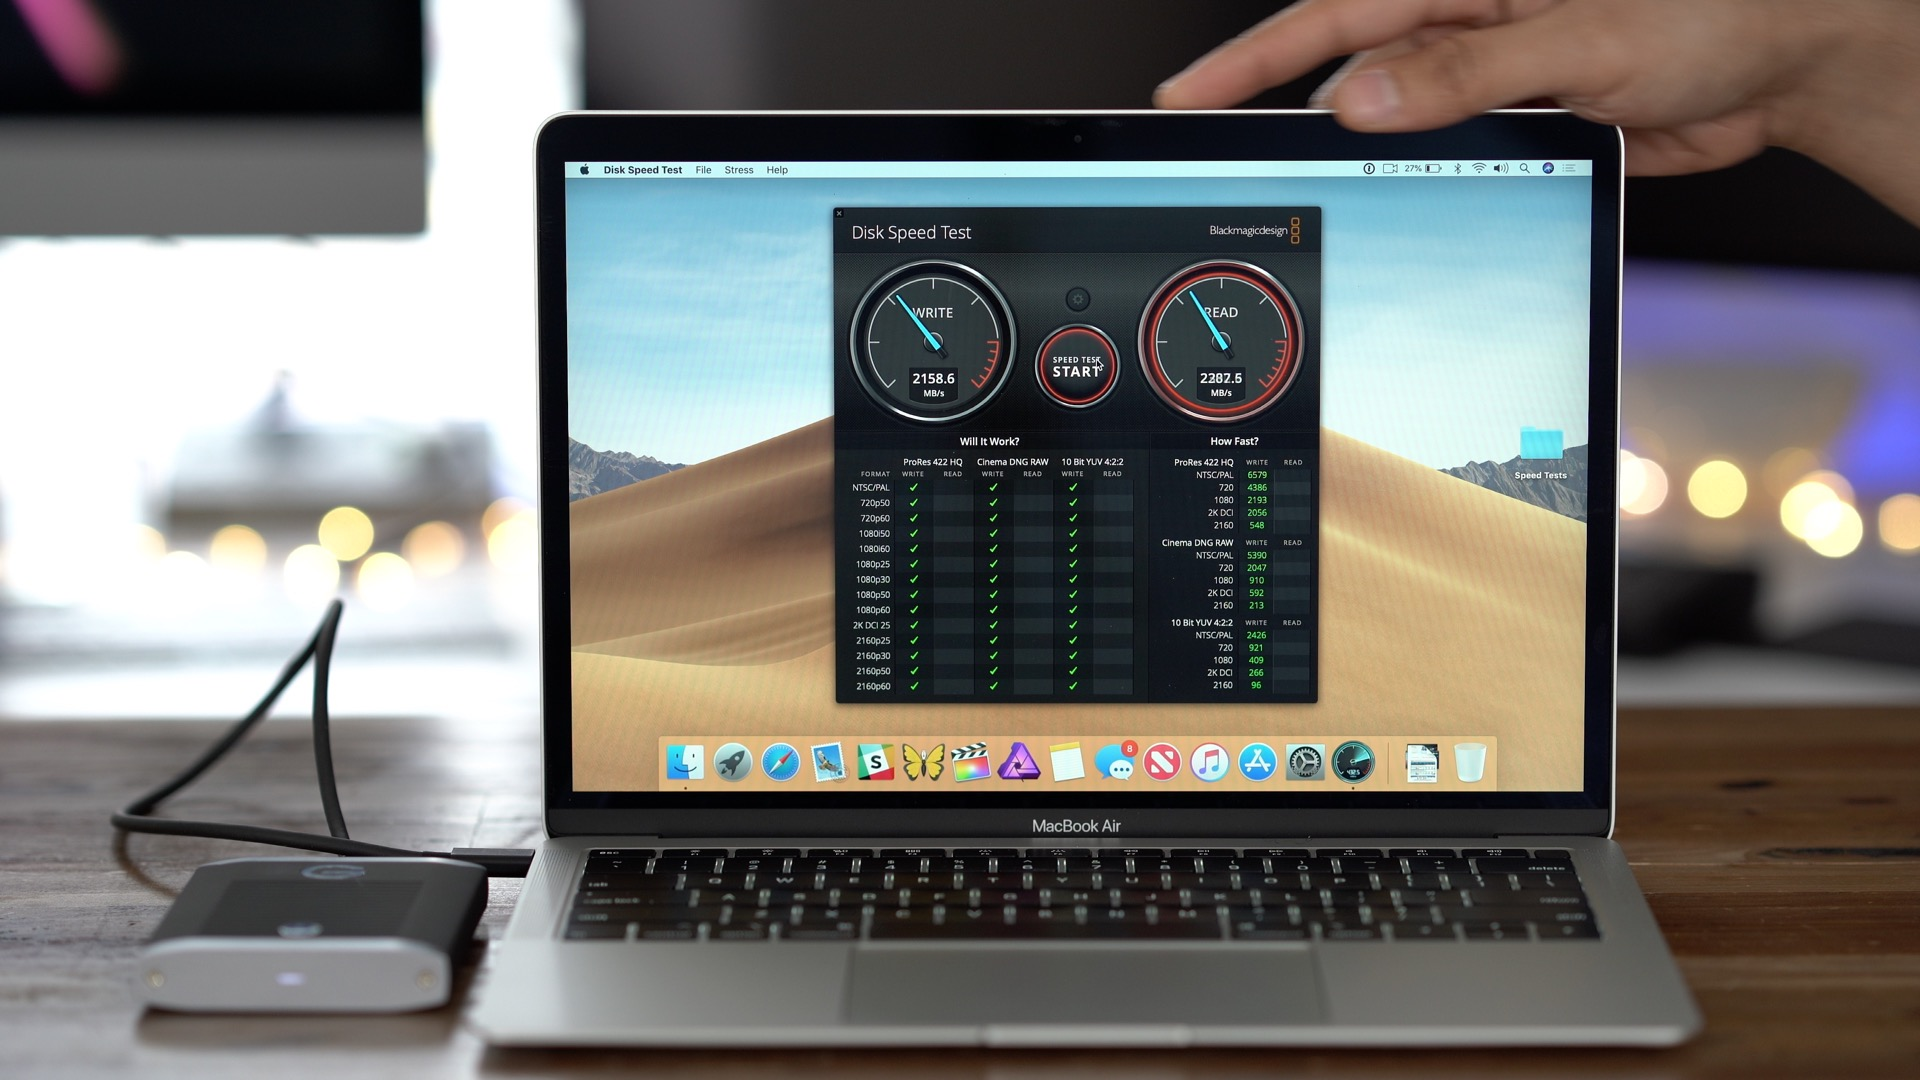 Drive Mobile Pro Thunderbolt 3 Ssd - Great